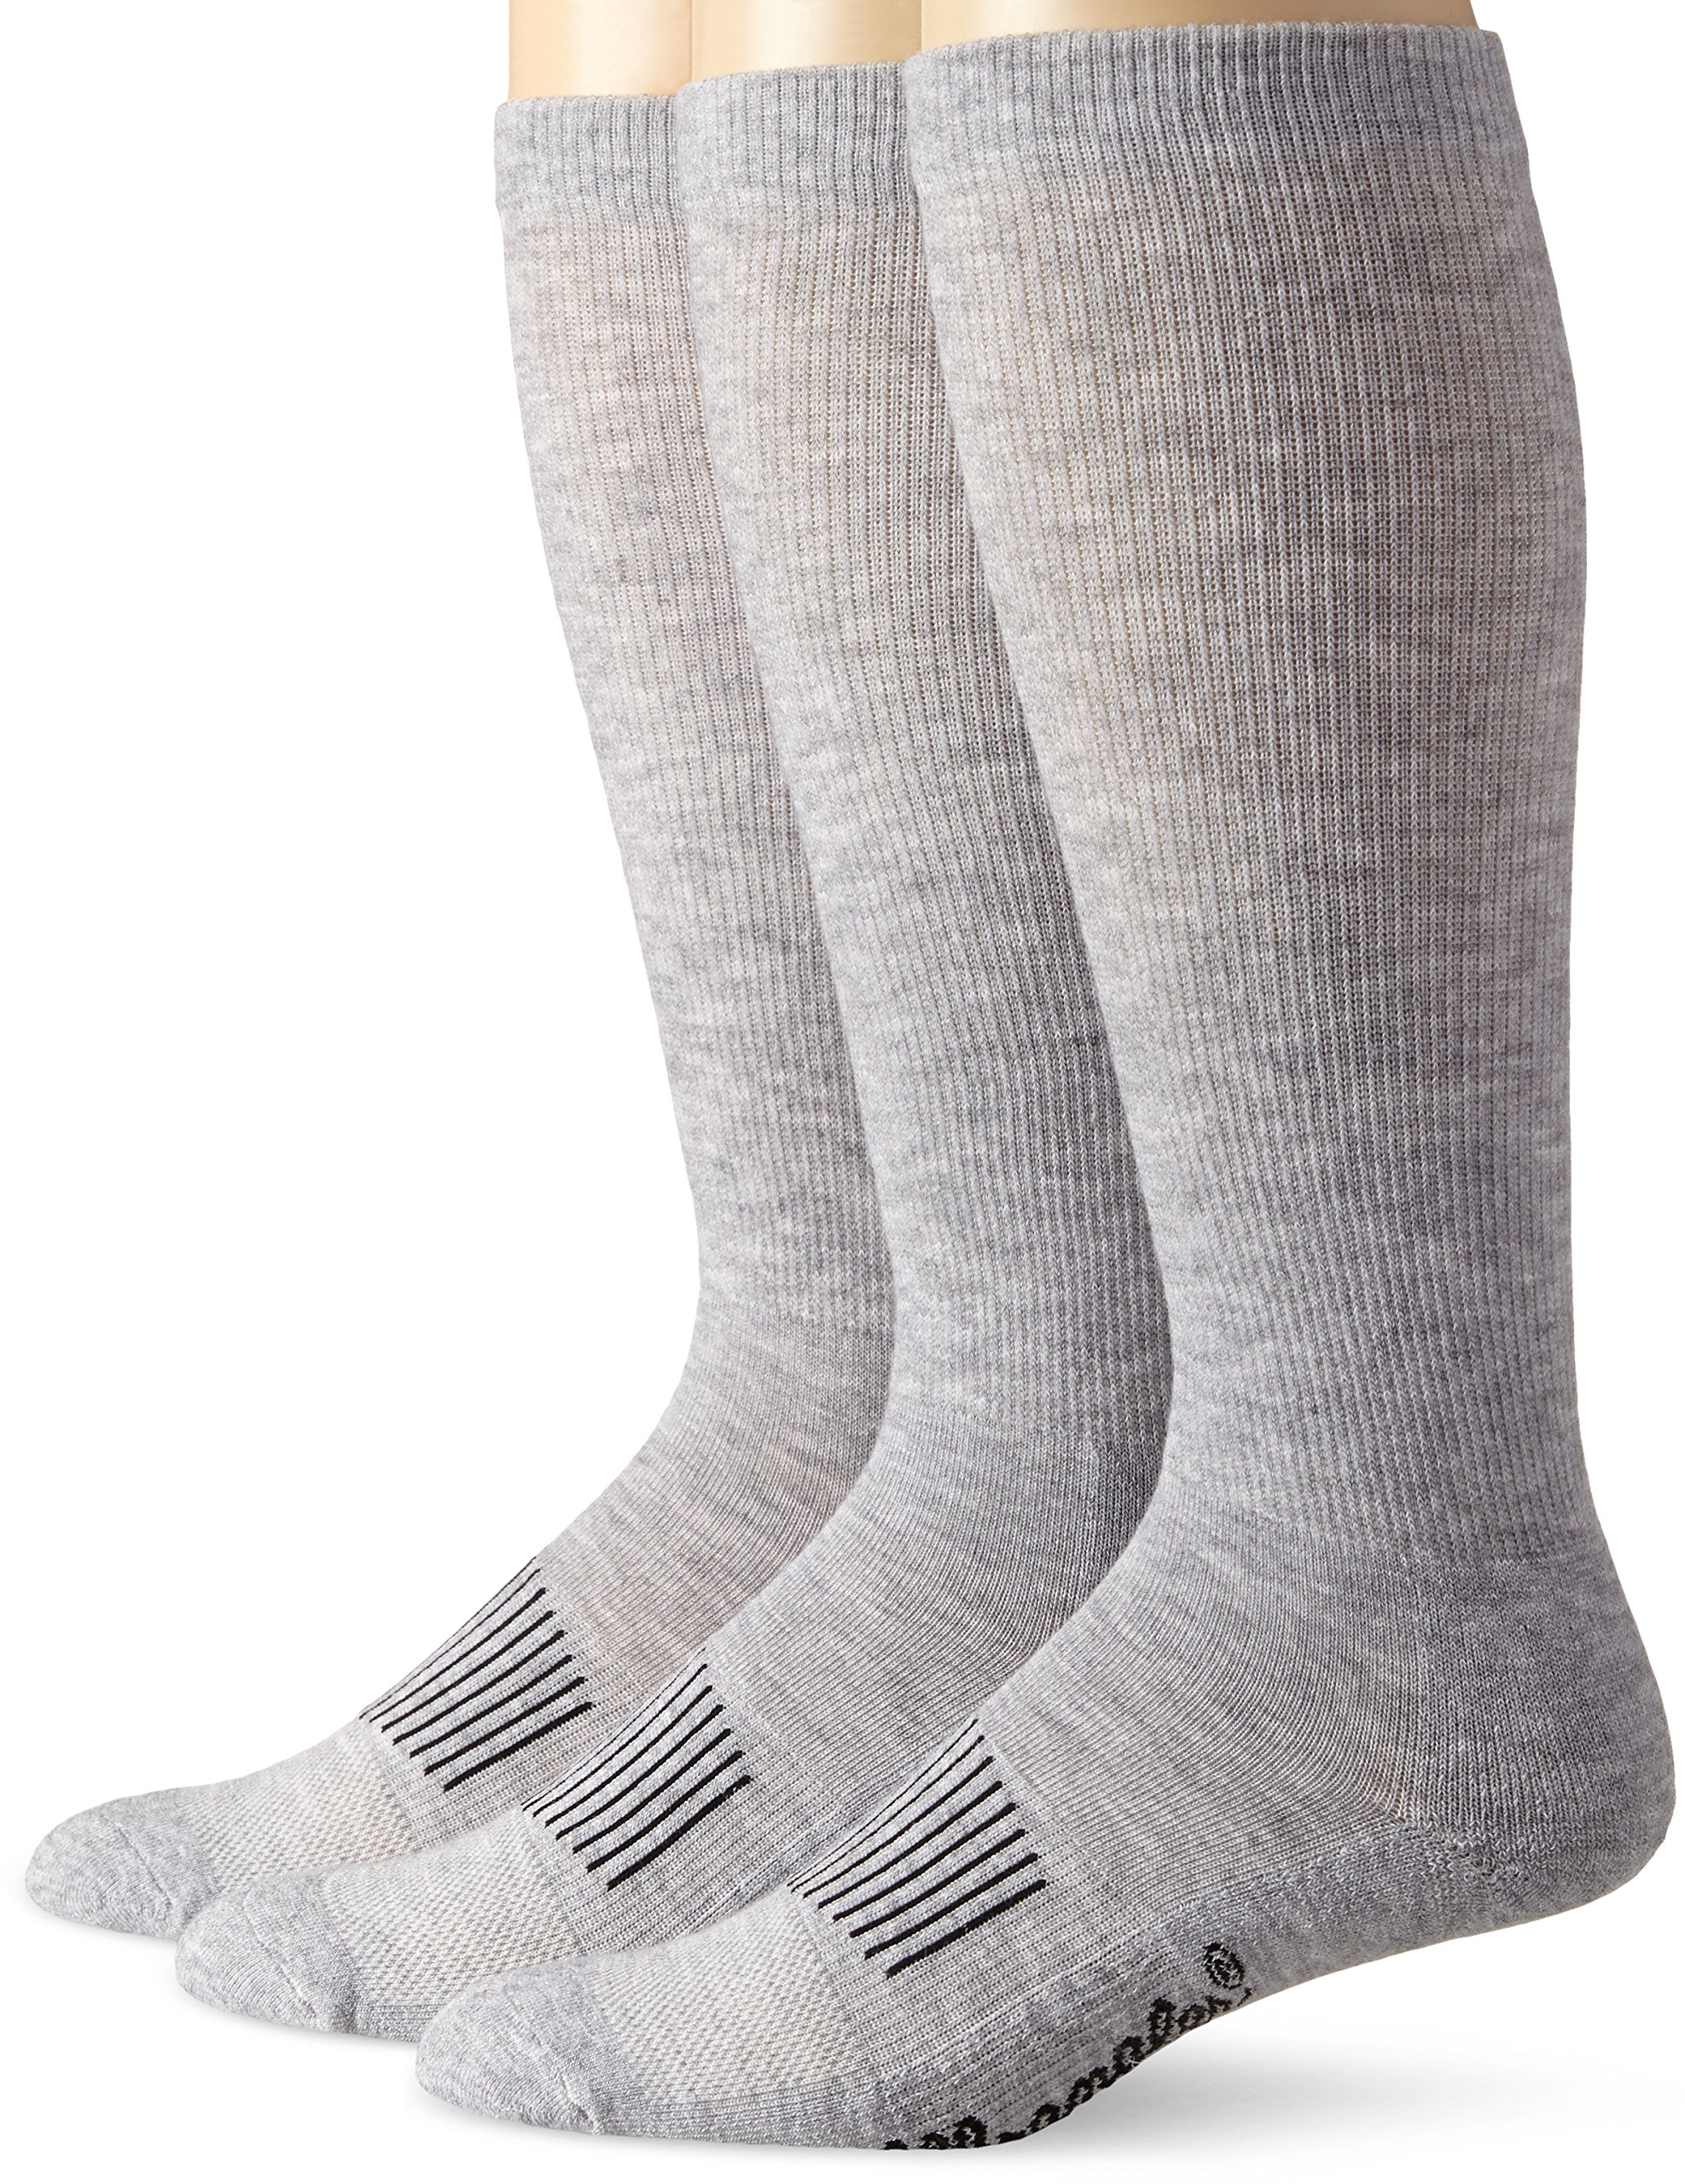 Wrangler Men's Western Boot Socks (Pack of 3),Grey,Sock Size:X-Large(12-15)/Shoe Size: 12-16 by Wrangler